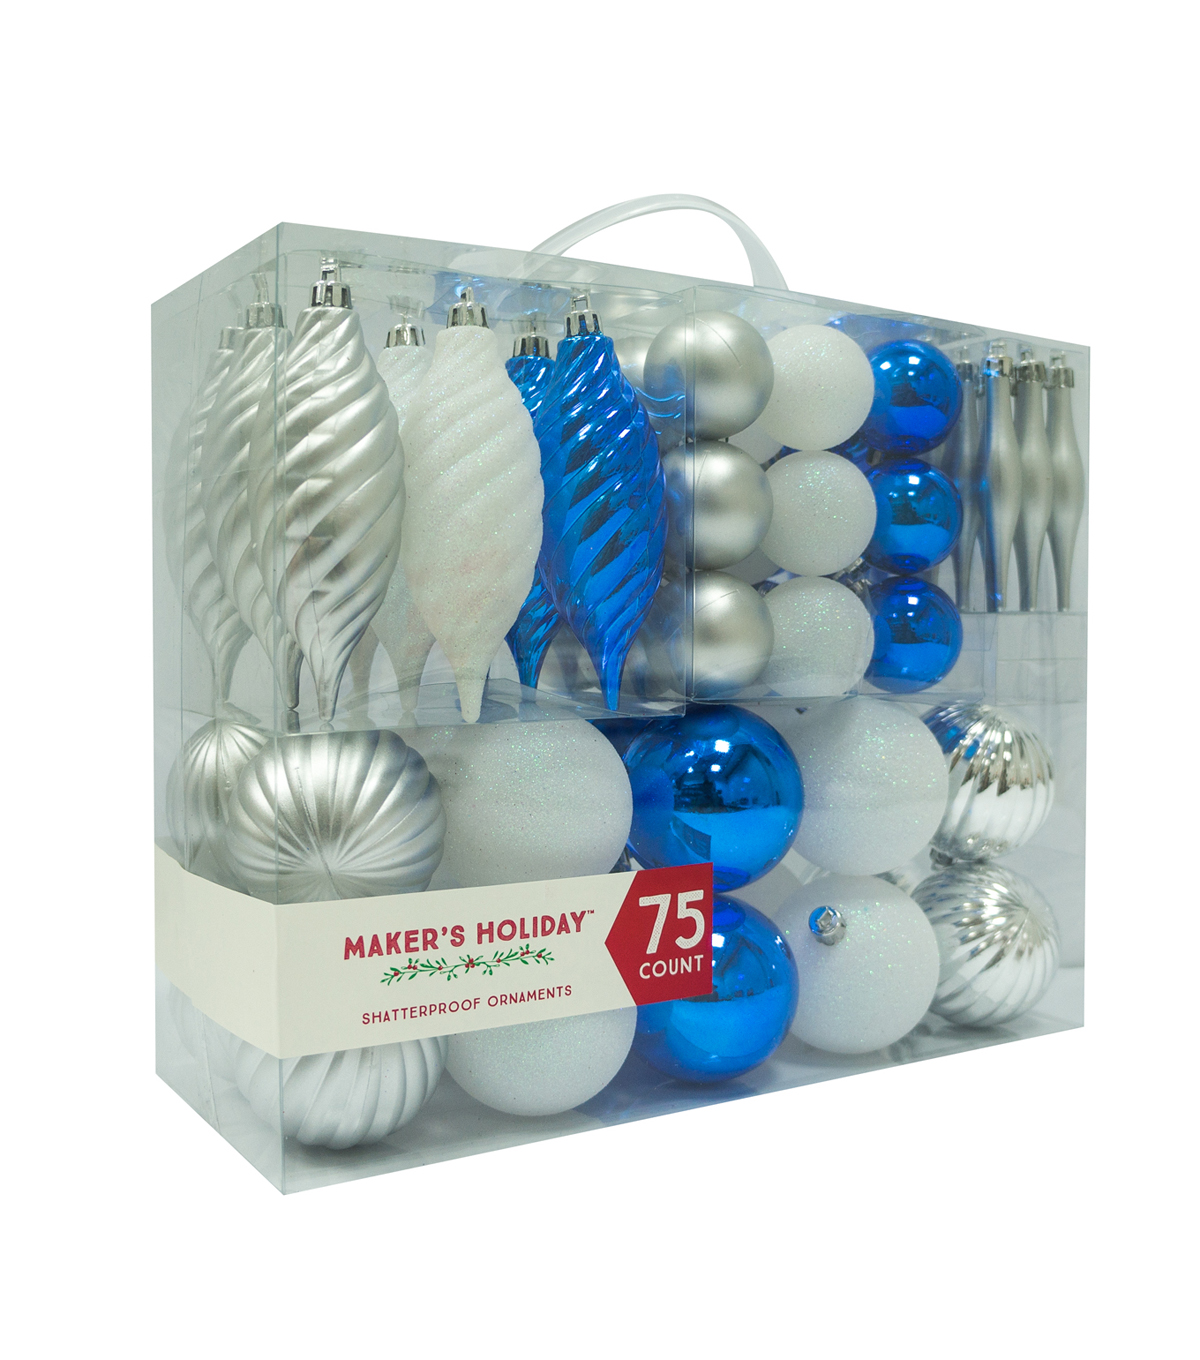 Maker\u0027s Holiday 75ct Shatterproof Ornaments-Blue, Silver & White